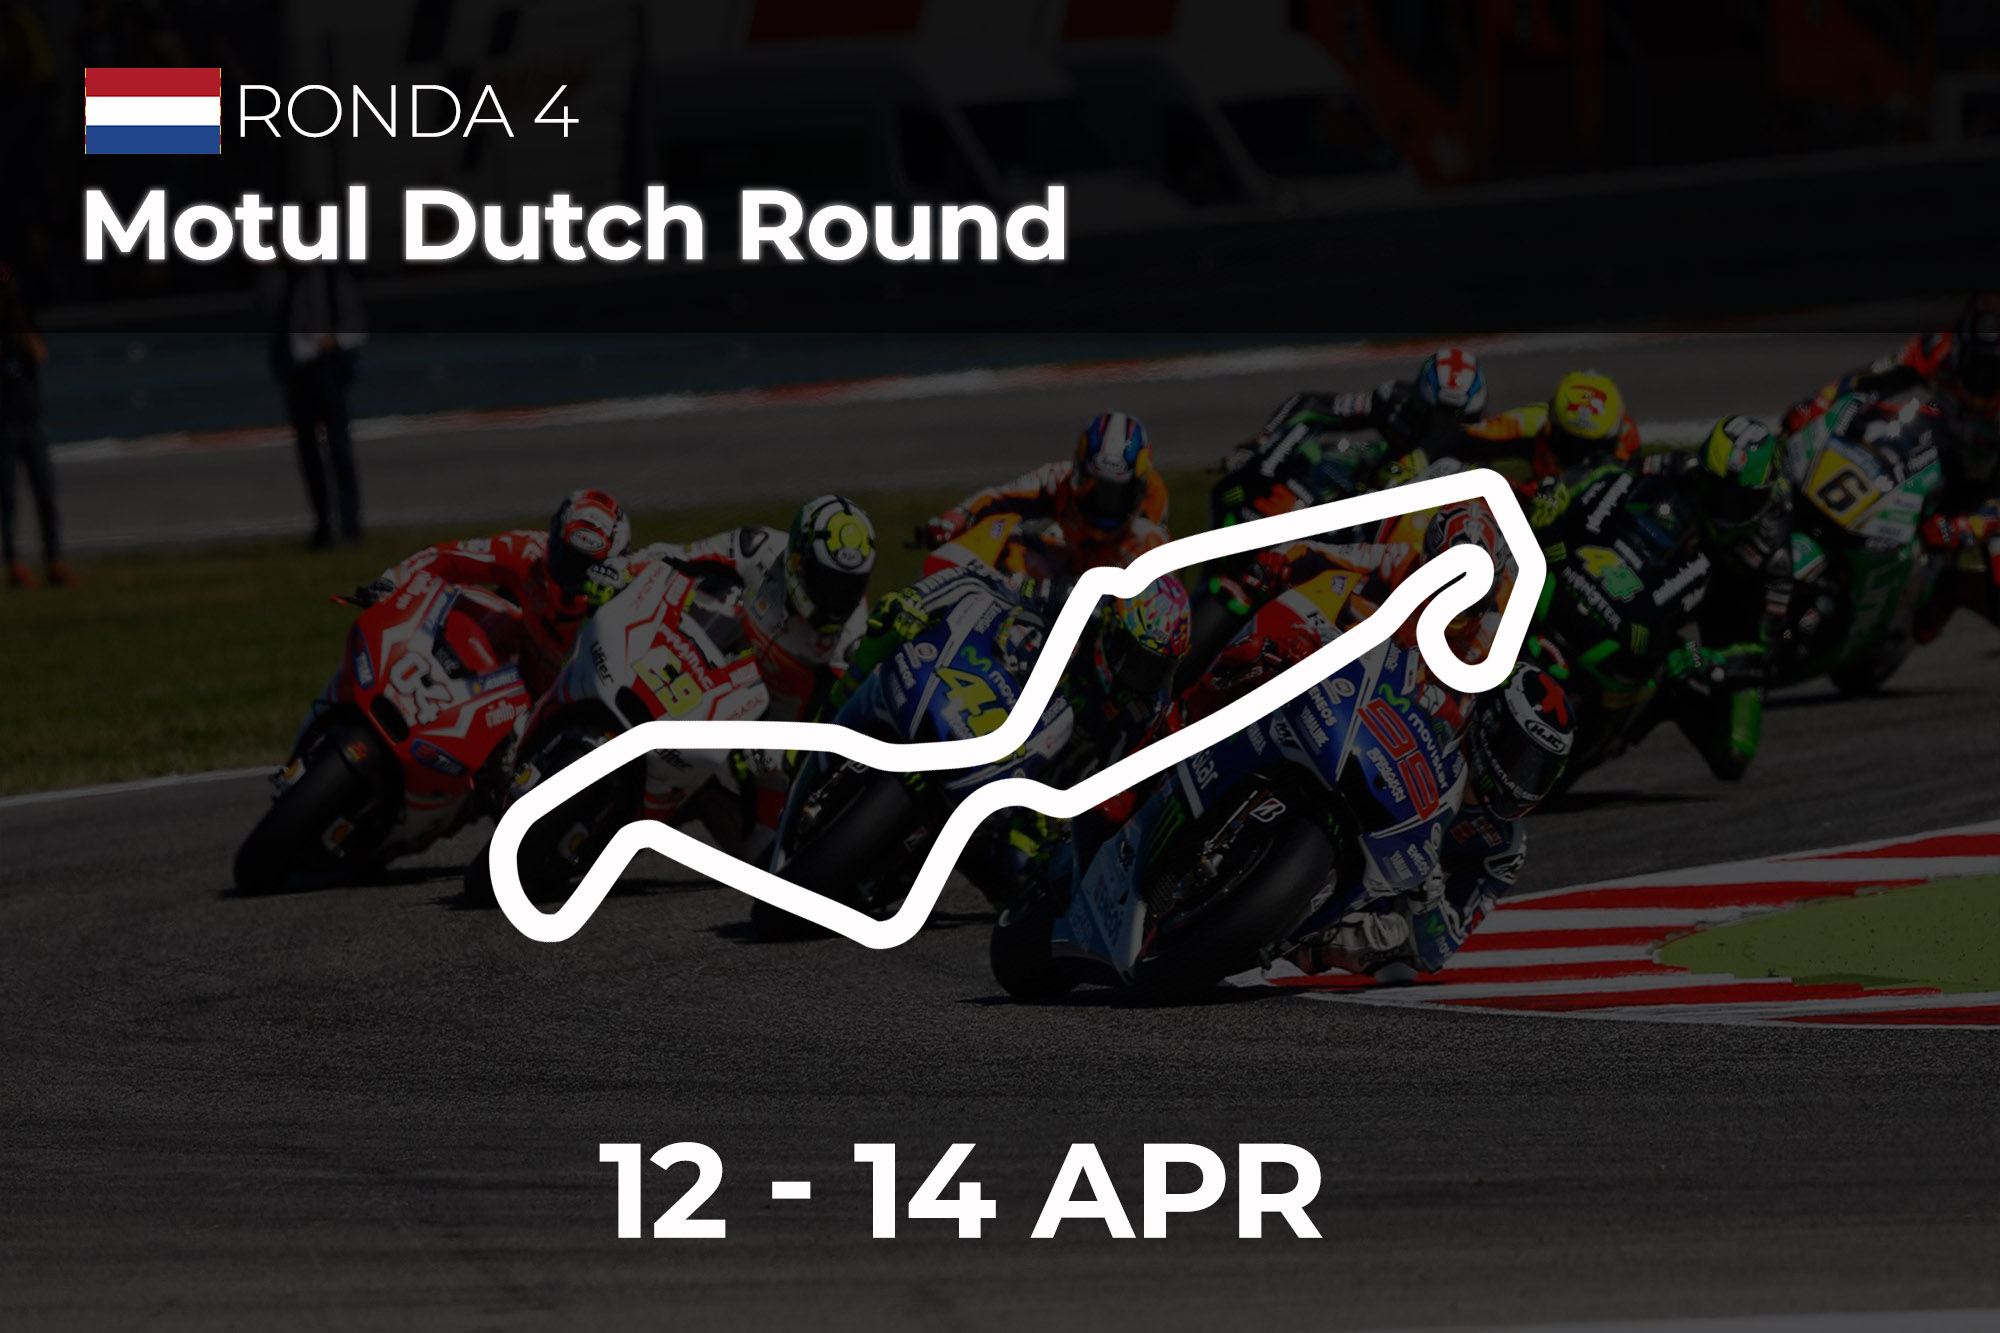 Motul Dutch Round